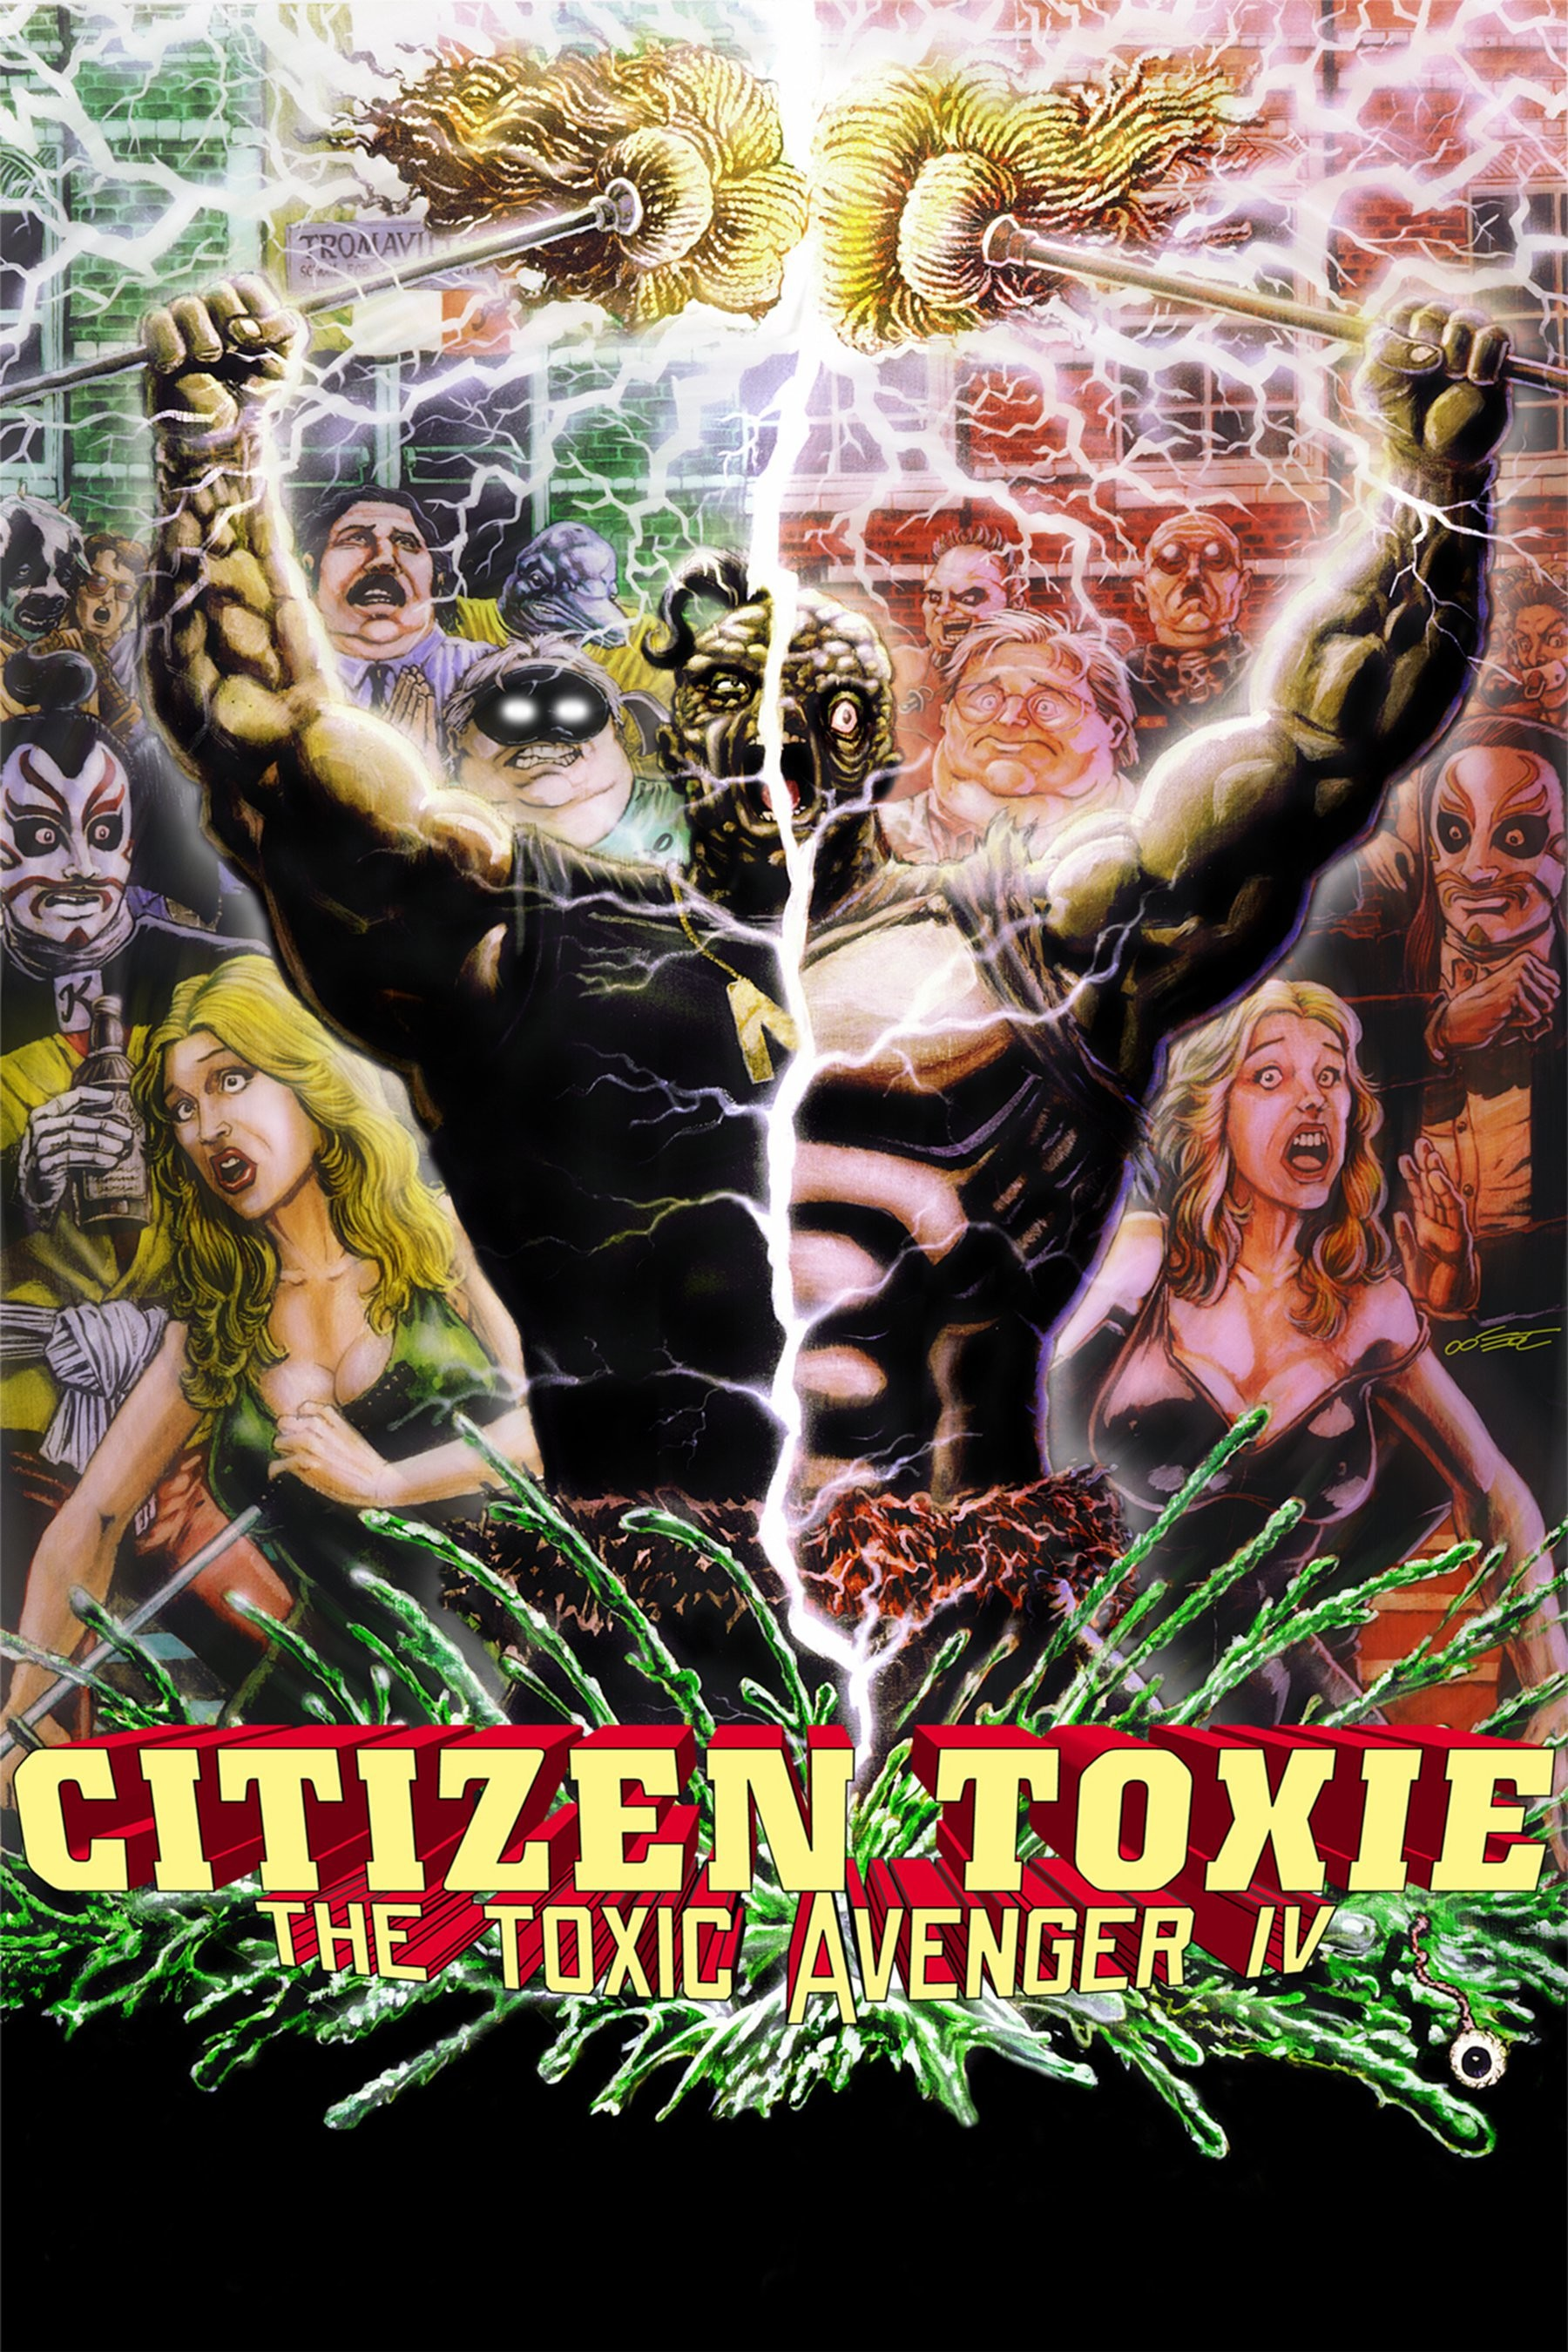 Watch Citizen Toxie: The Toxic Avenger IV (2001) Free Online